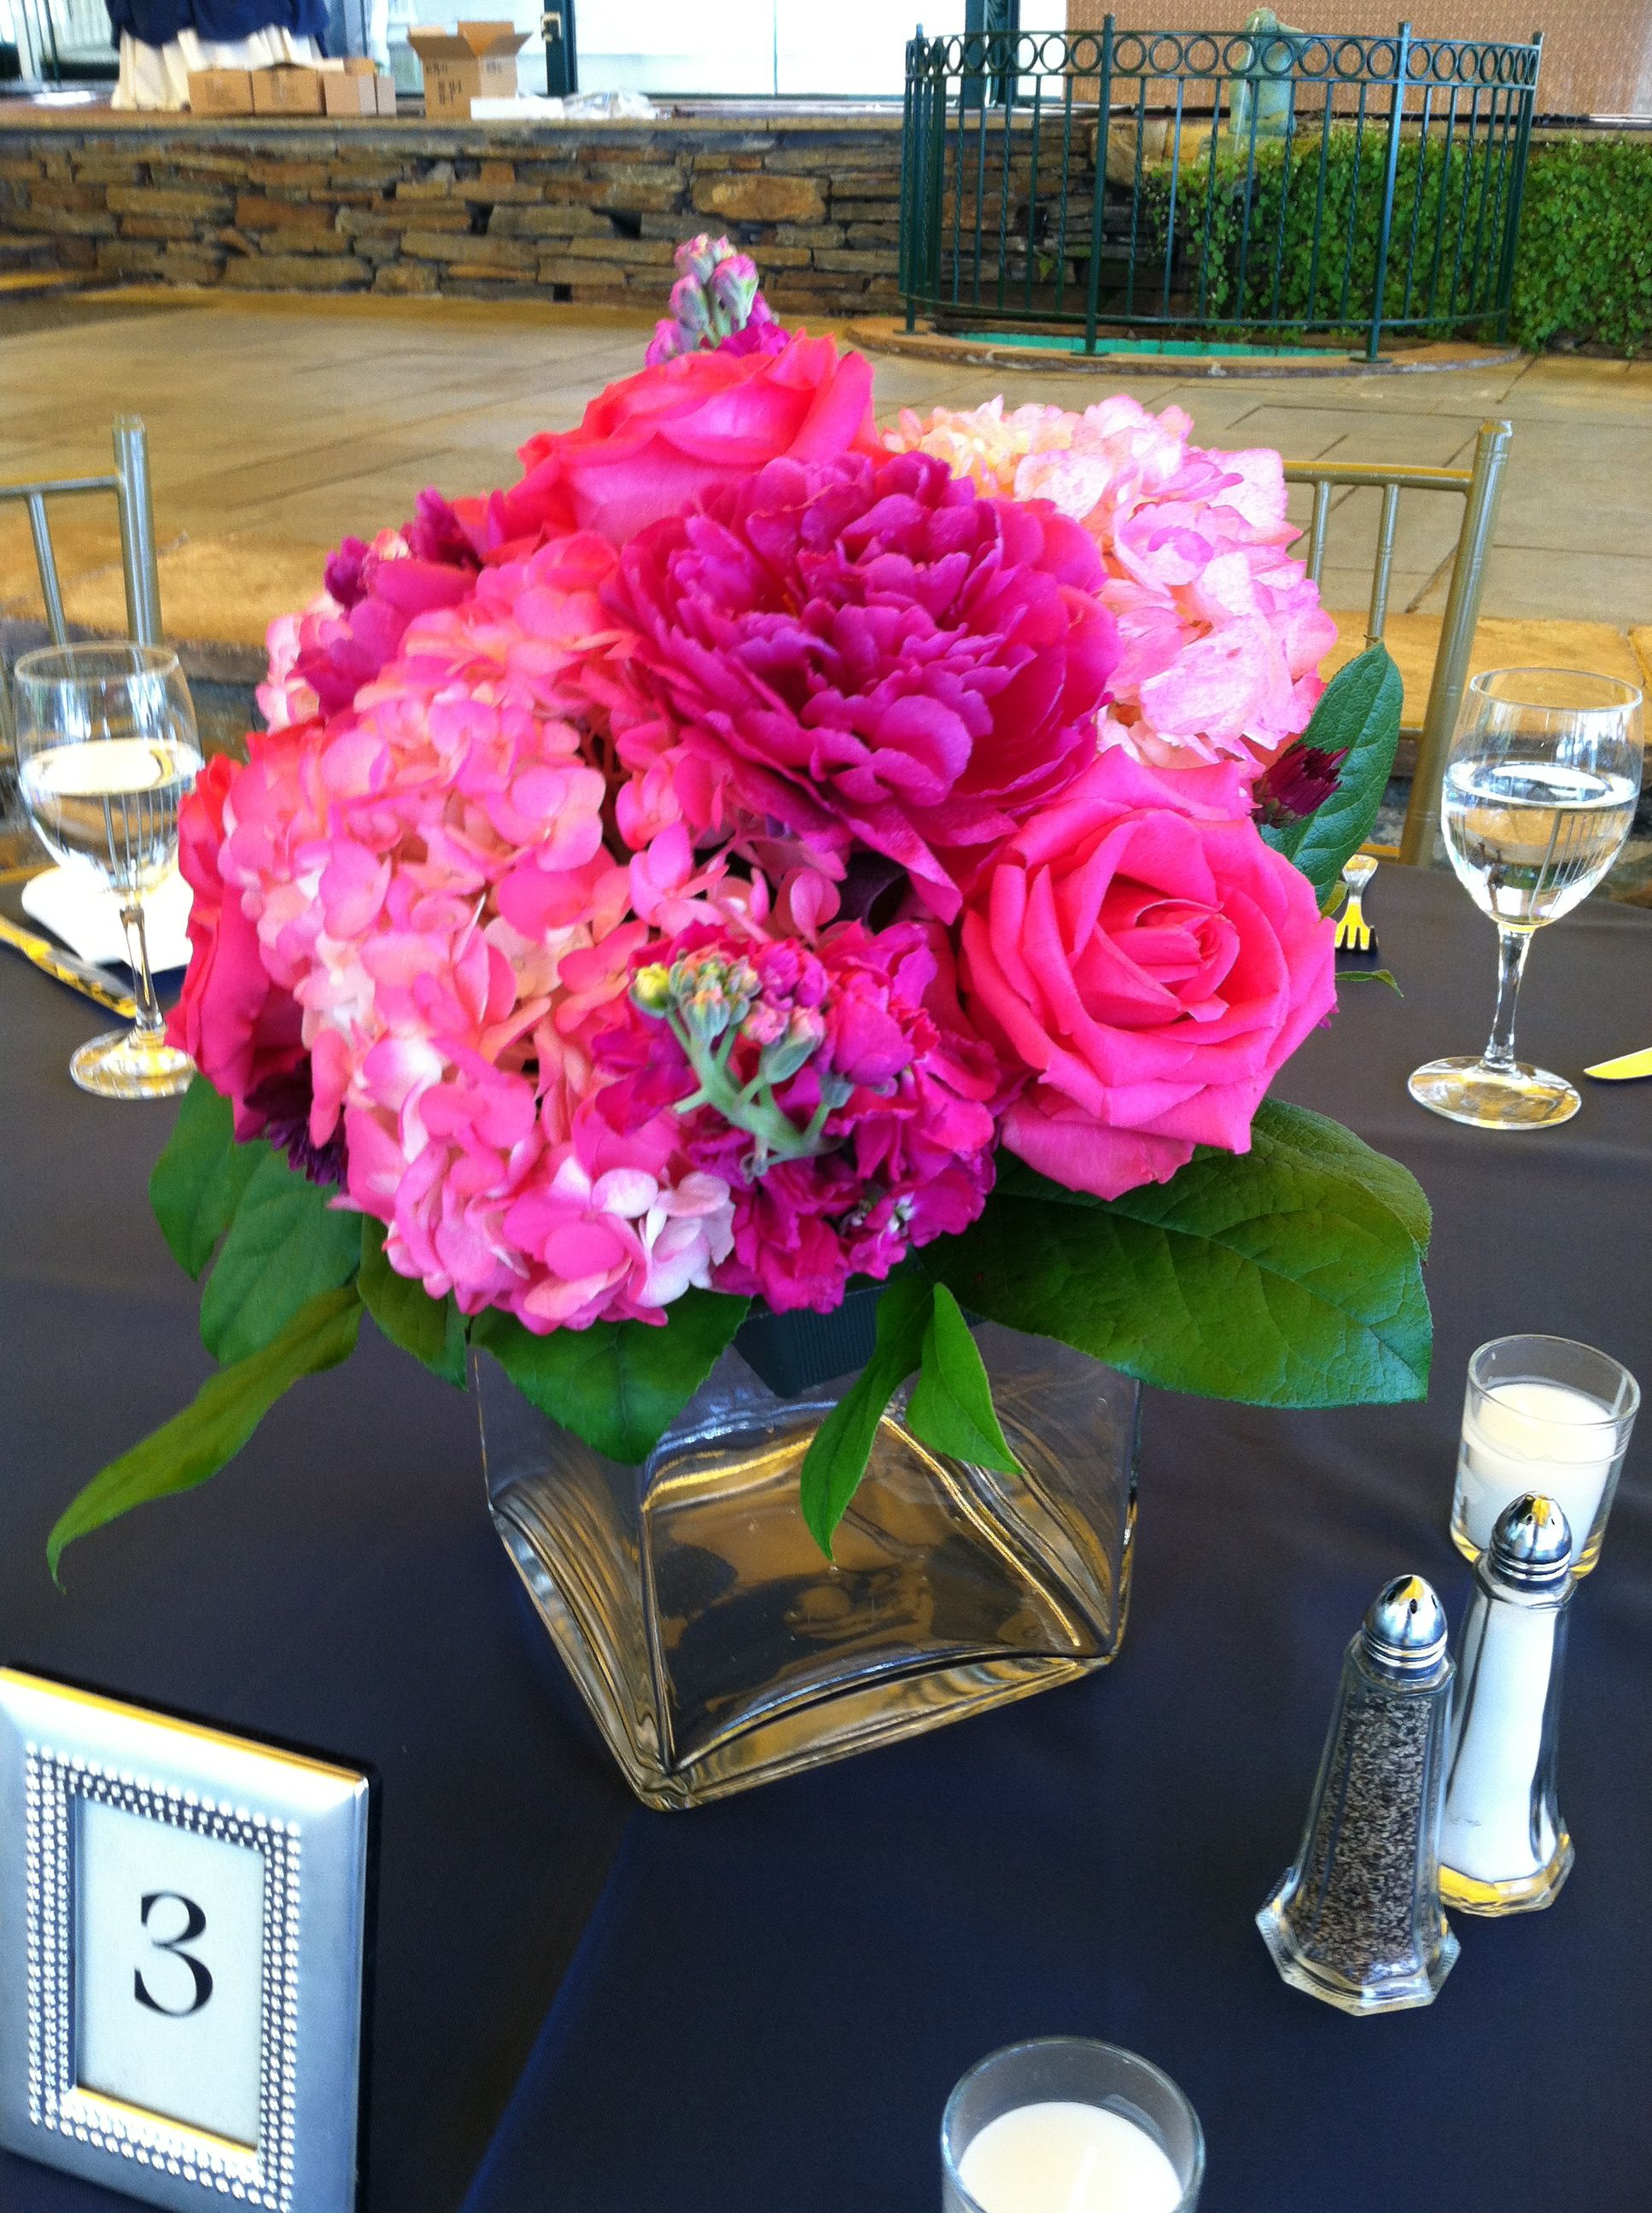 Glen foerd mansion in philadelphia pink peony hot